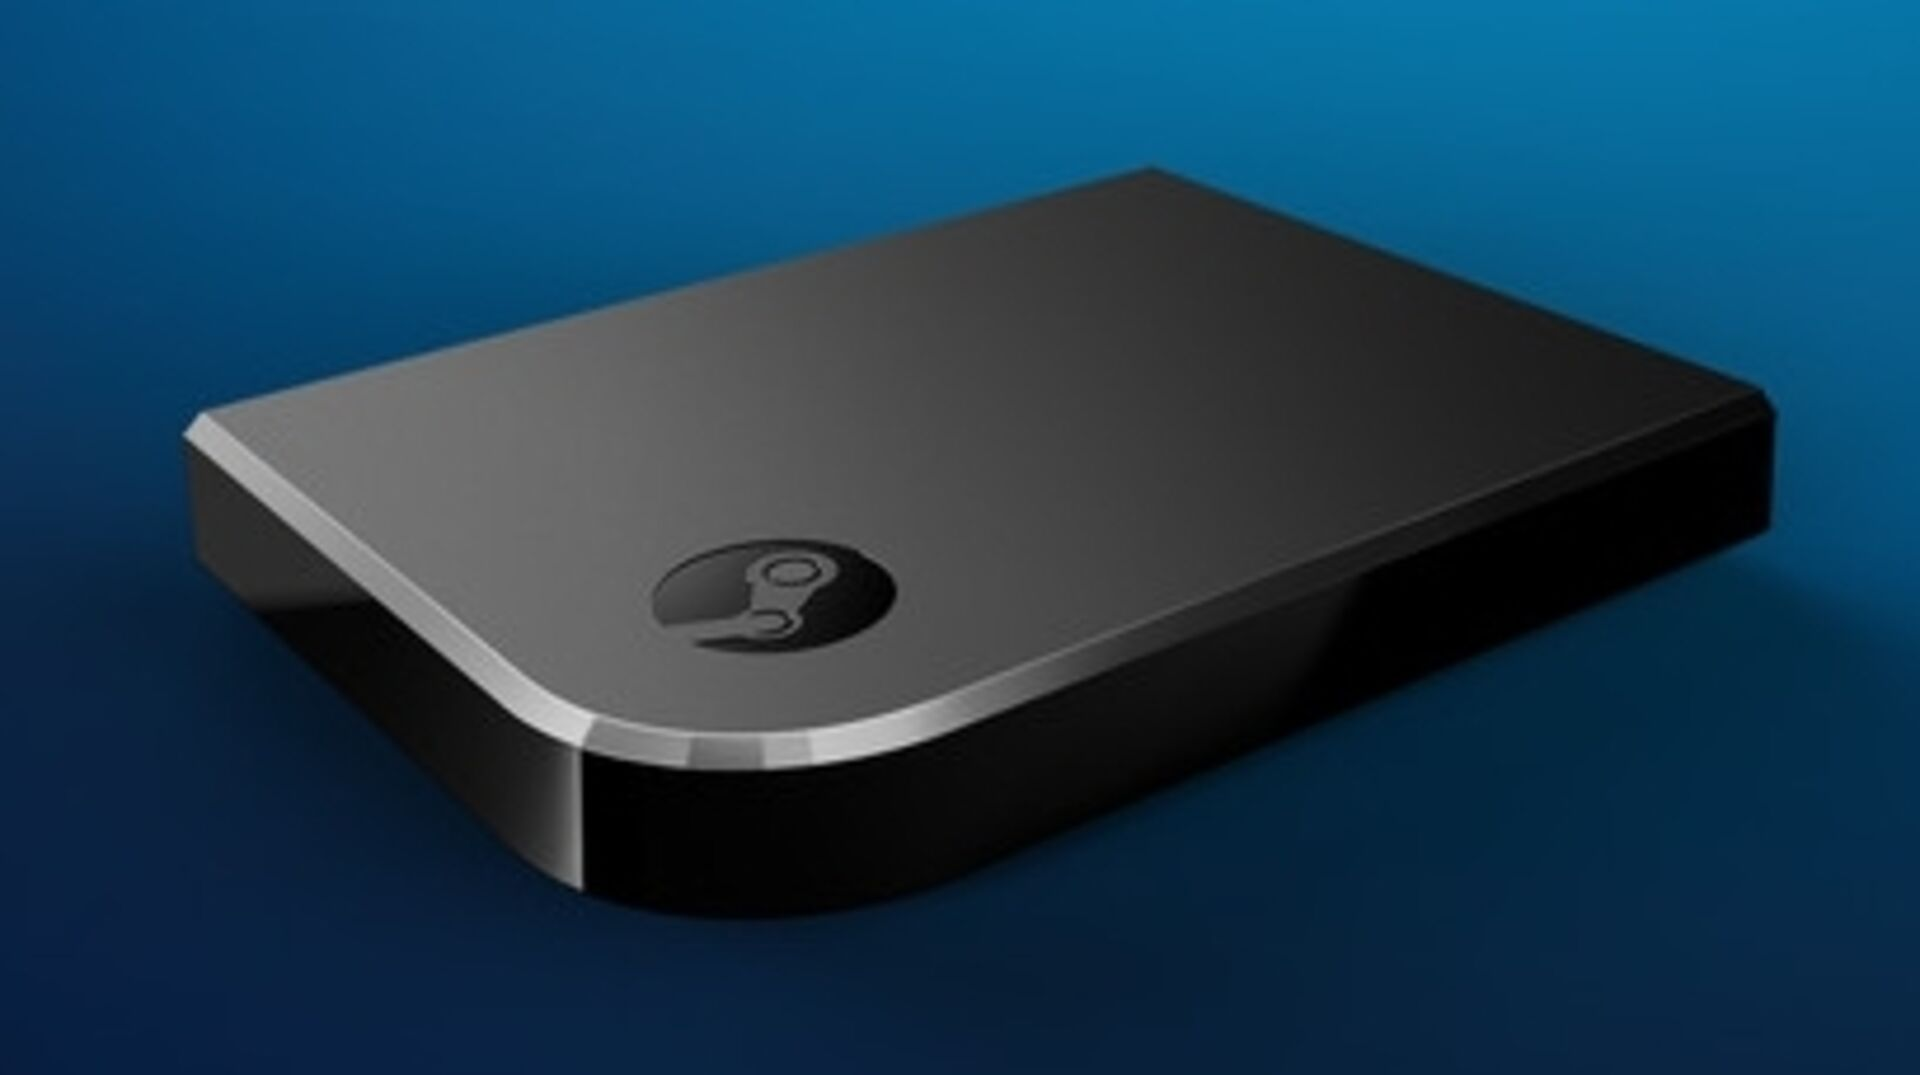 Latest Steam Link update lets you play local co-op by